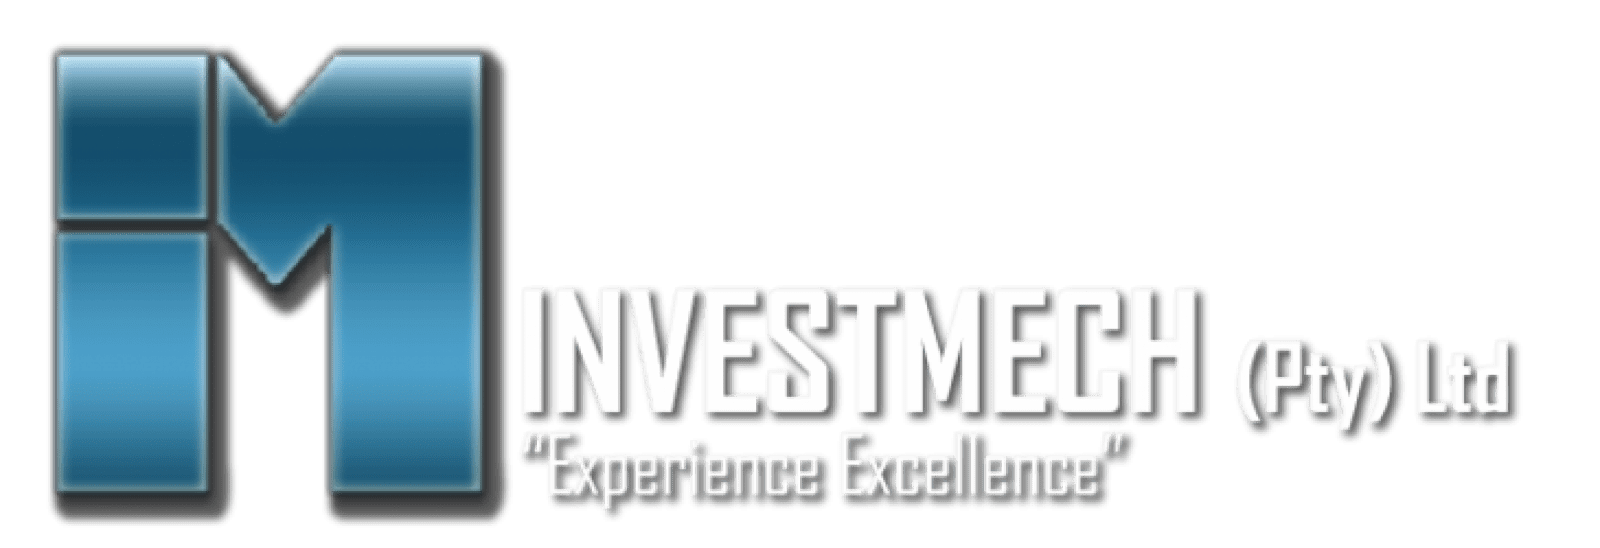 INVESTMECH (Pty) Ltd